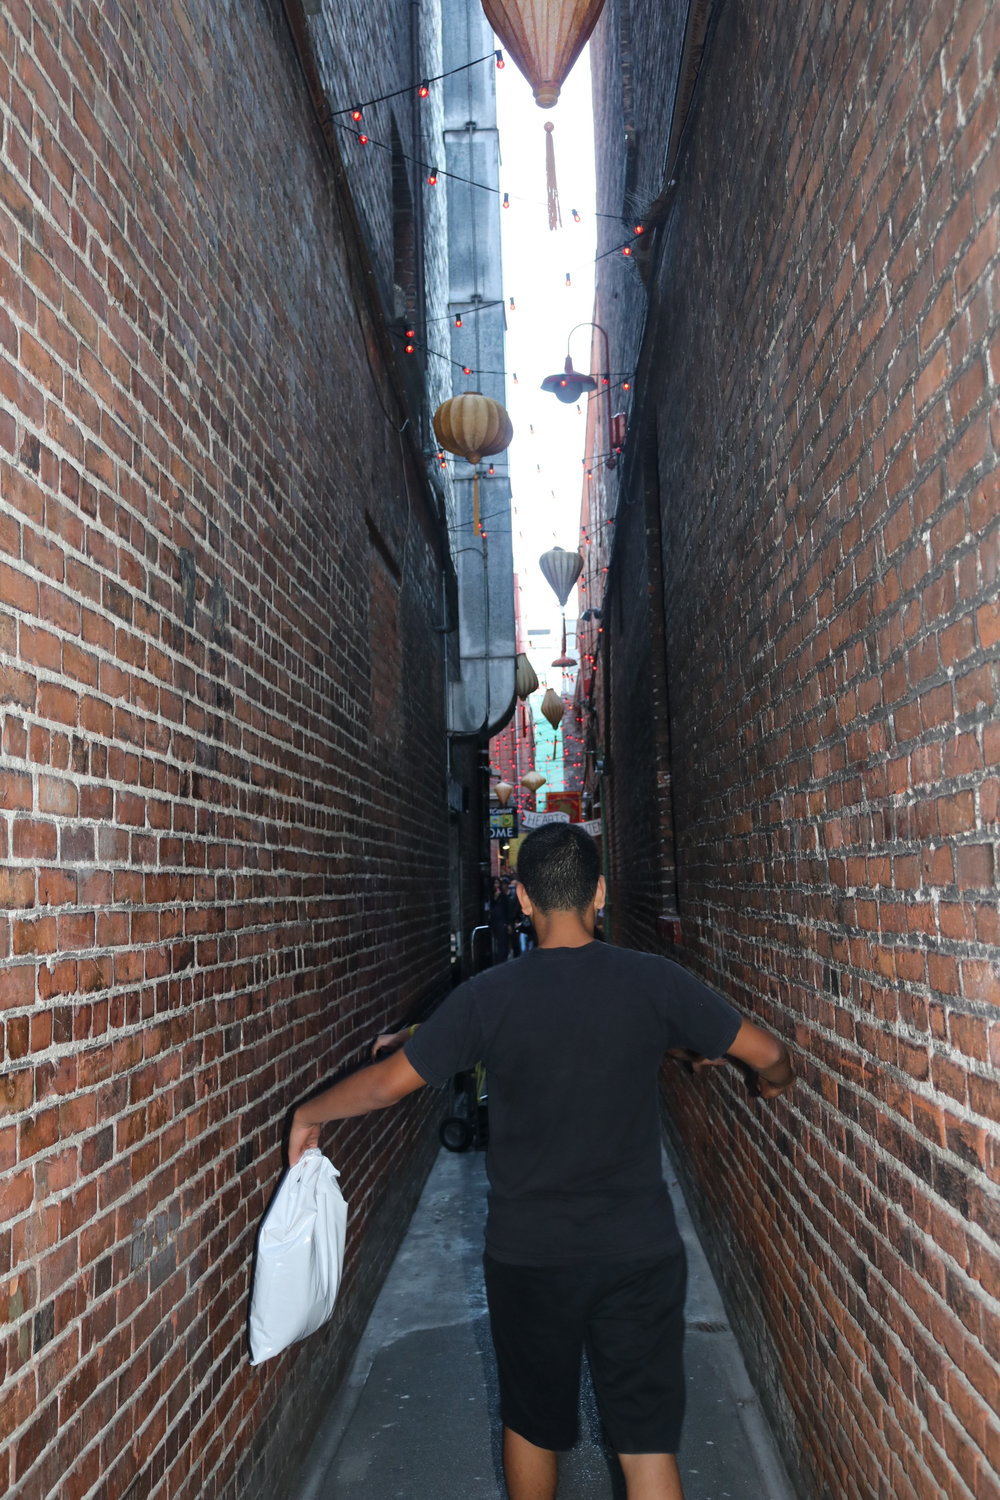 Fan Tan Alley starts out small, and narrows down to just under four feet in width.